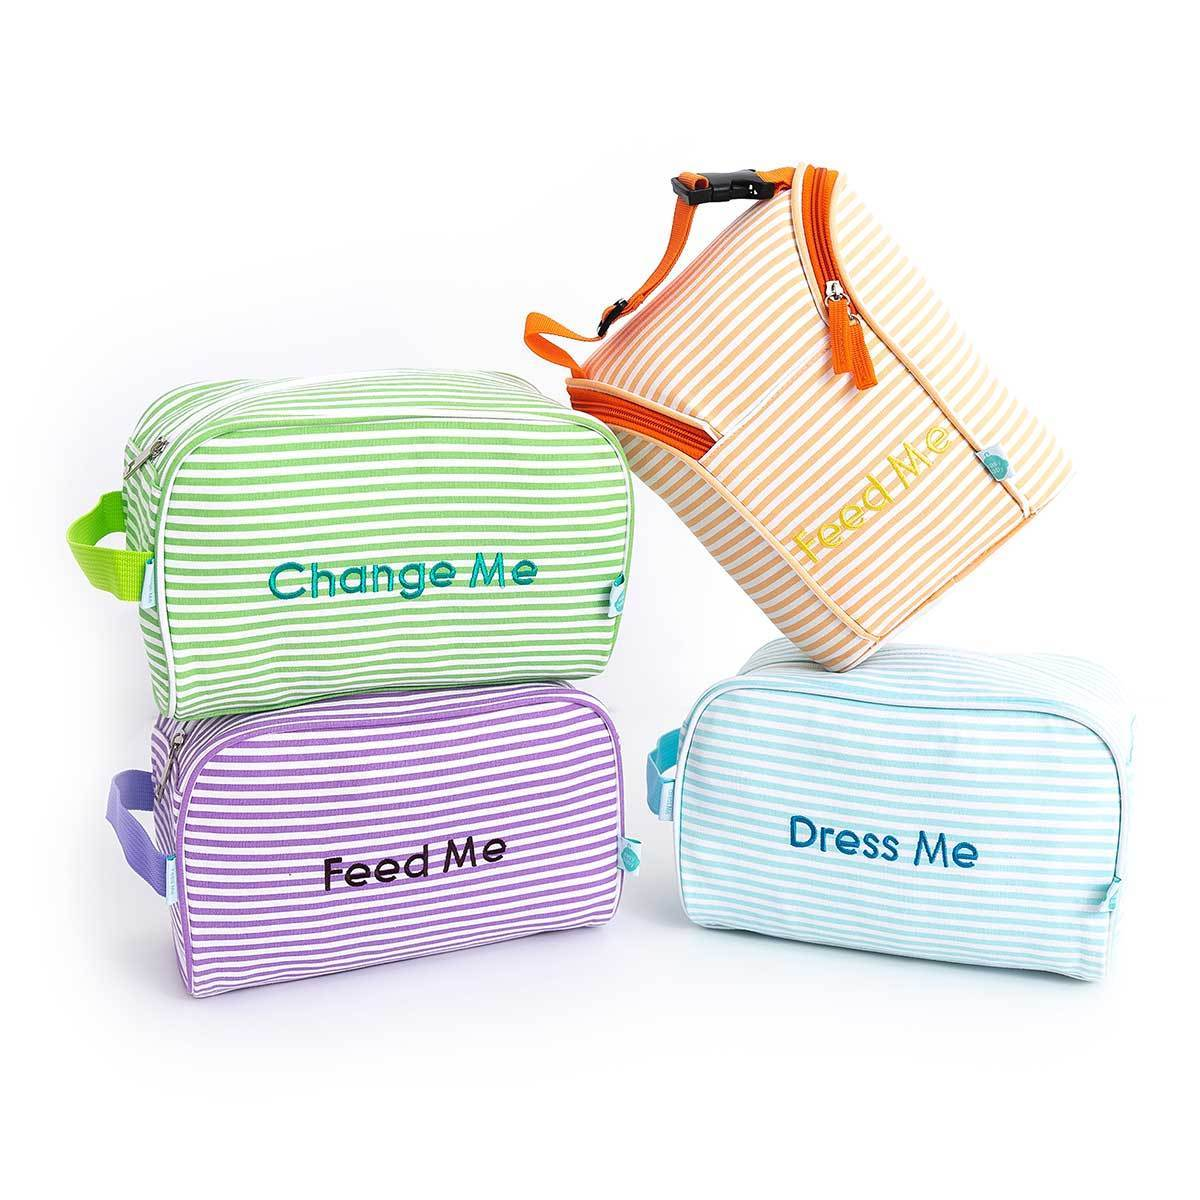 f8079583b01a Easy Baby Travelers Seersucker Style Diaper Bag Organizer Pouches Starter  Set of 4 - Diaper Bag